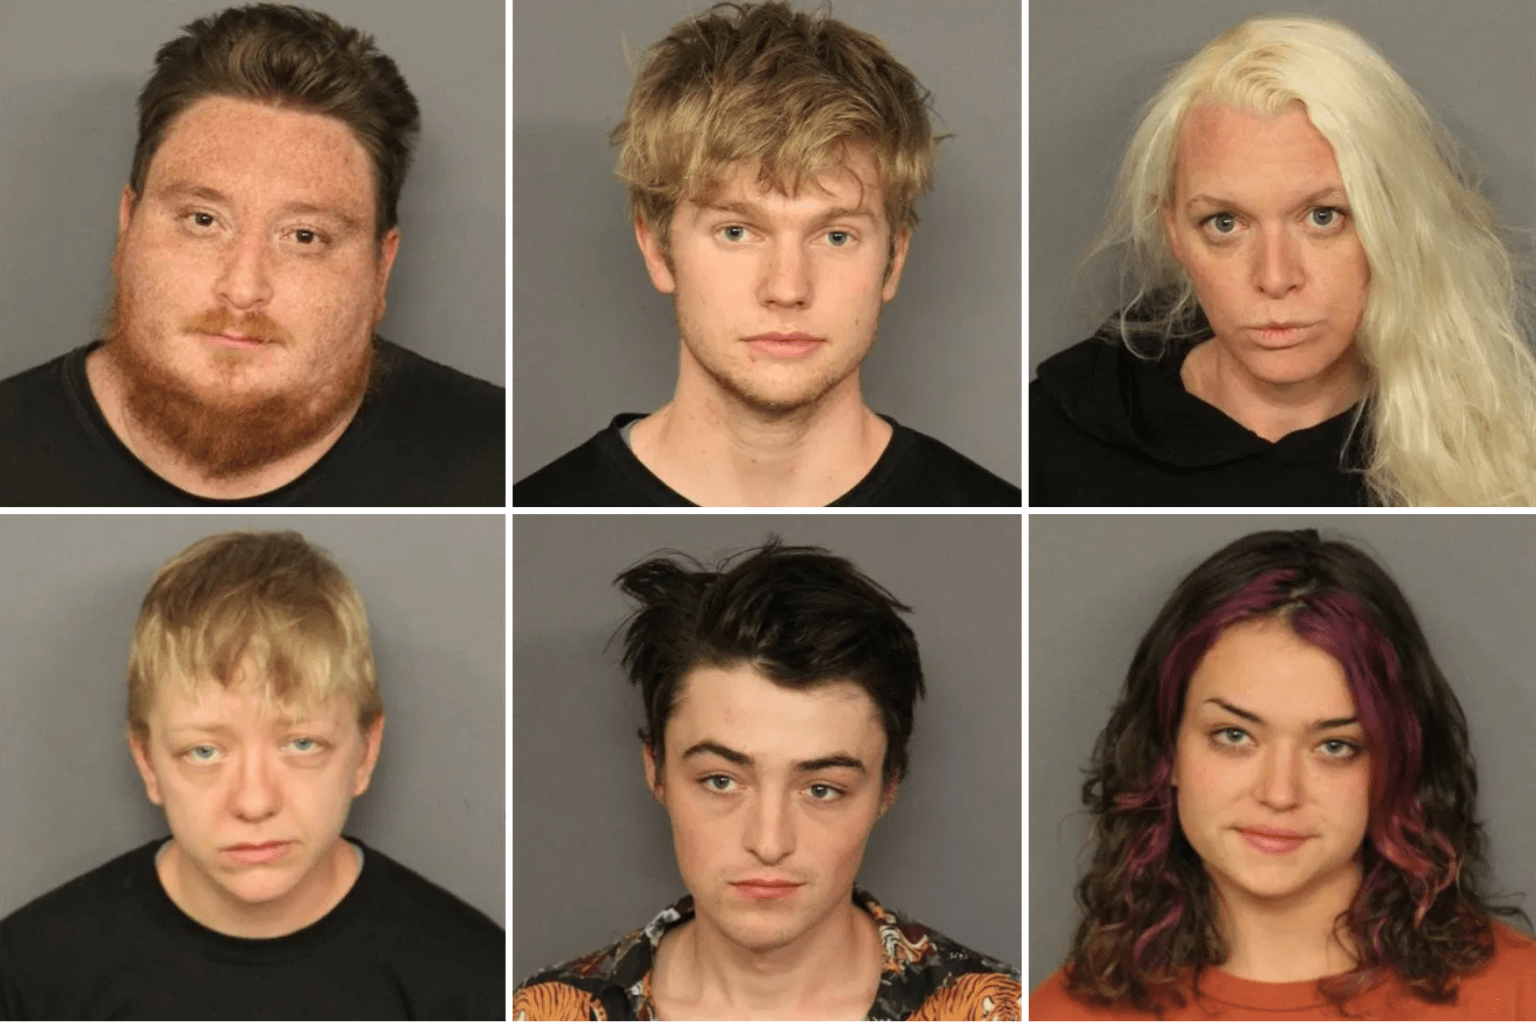 Nine people arrested for trying to break into a police academy while carrying 'destructive tools'